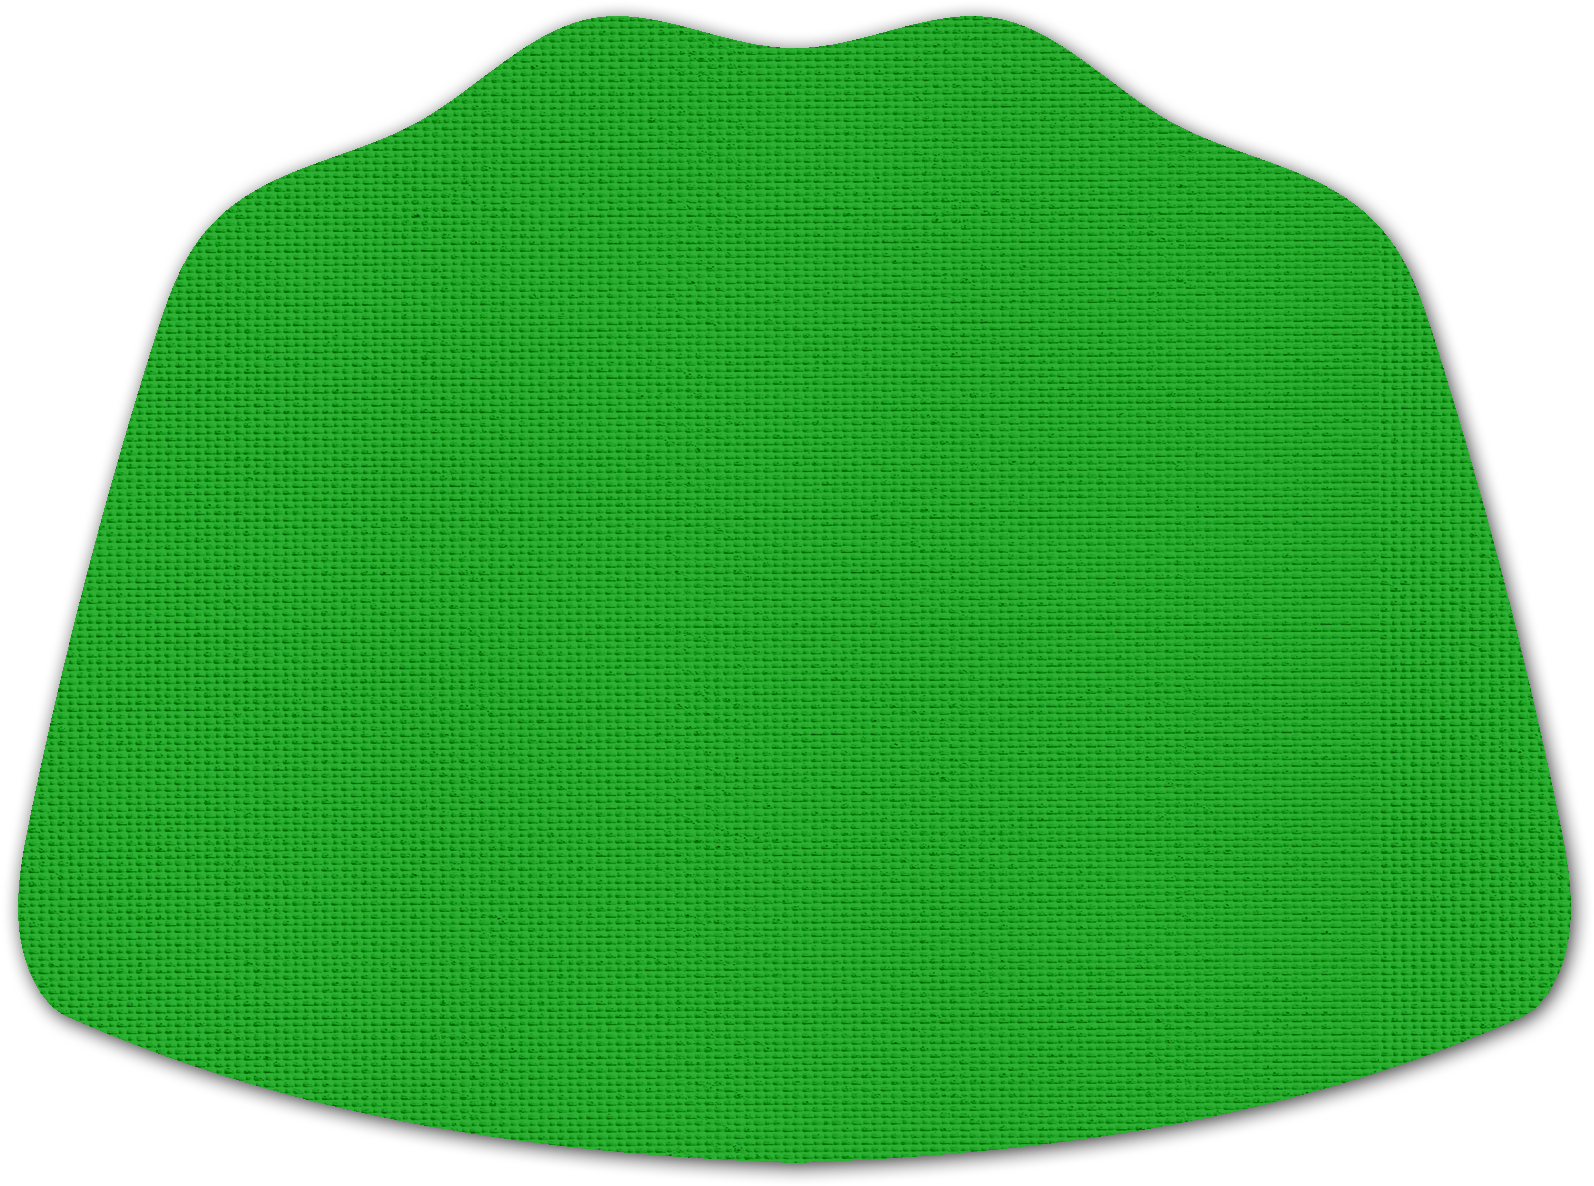 stock Beanie transparent blank. Hd image png download